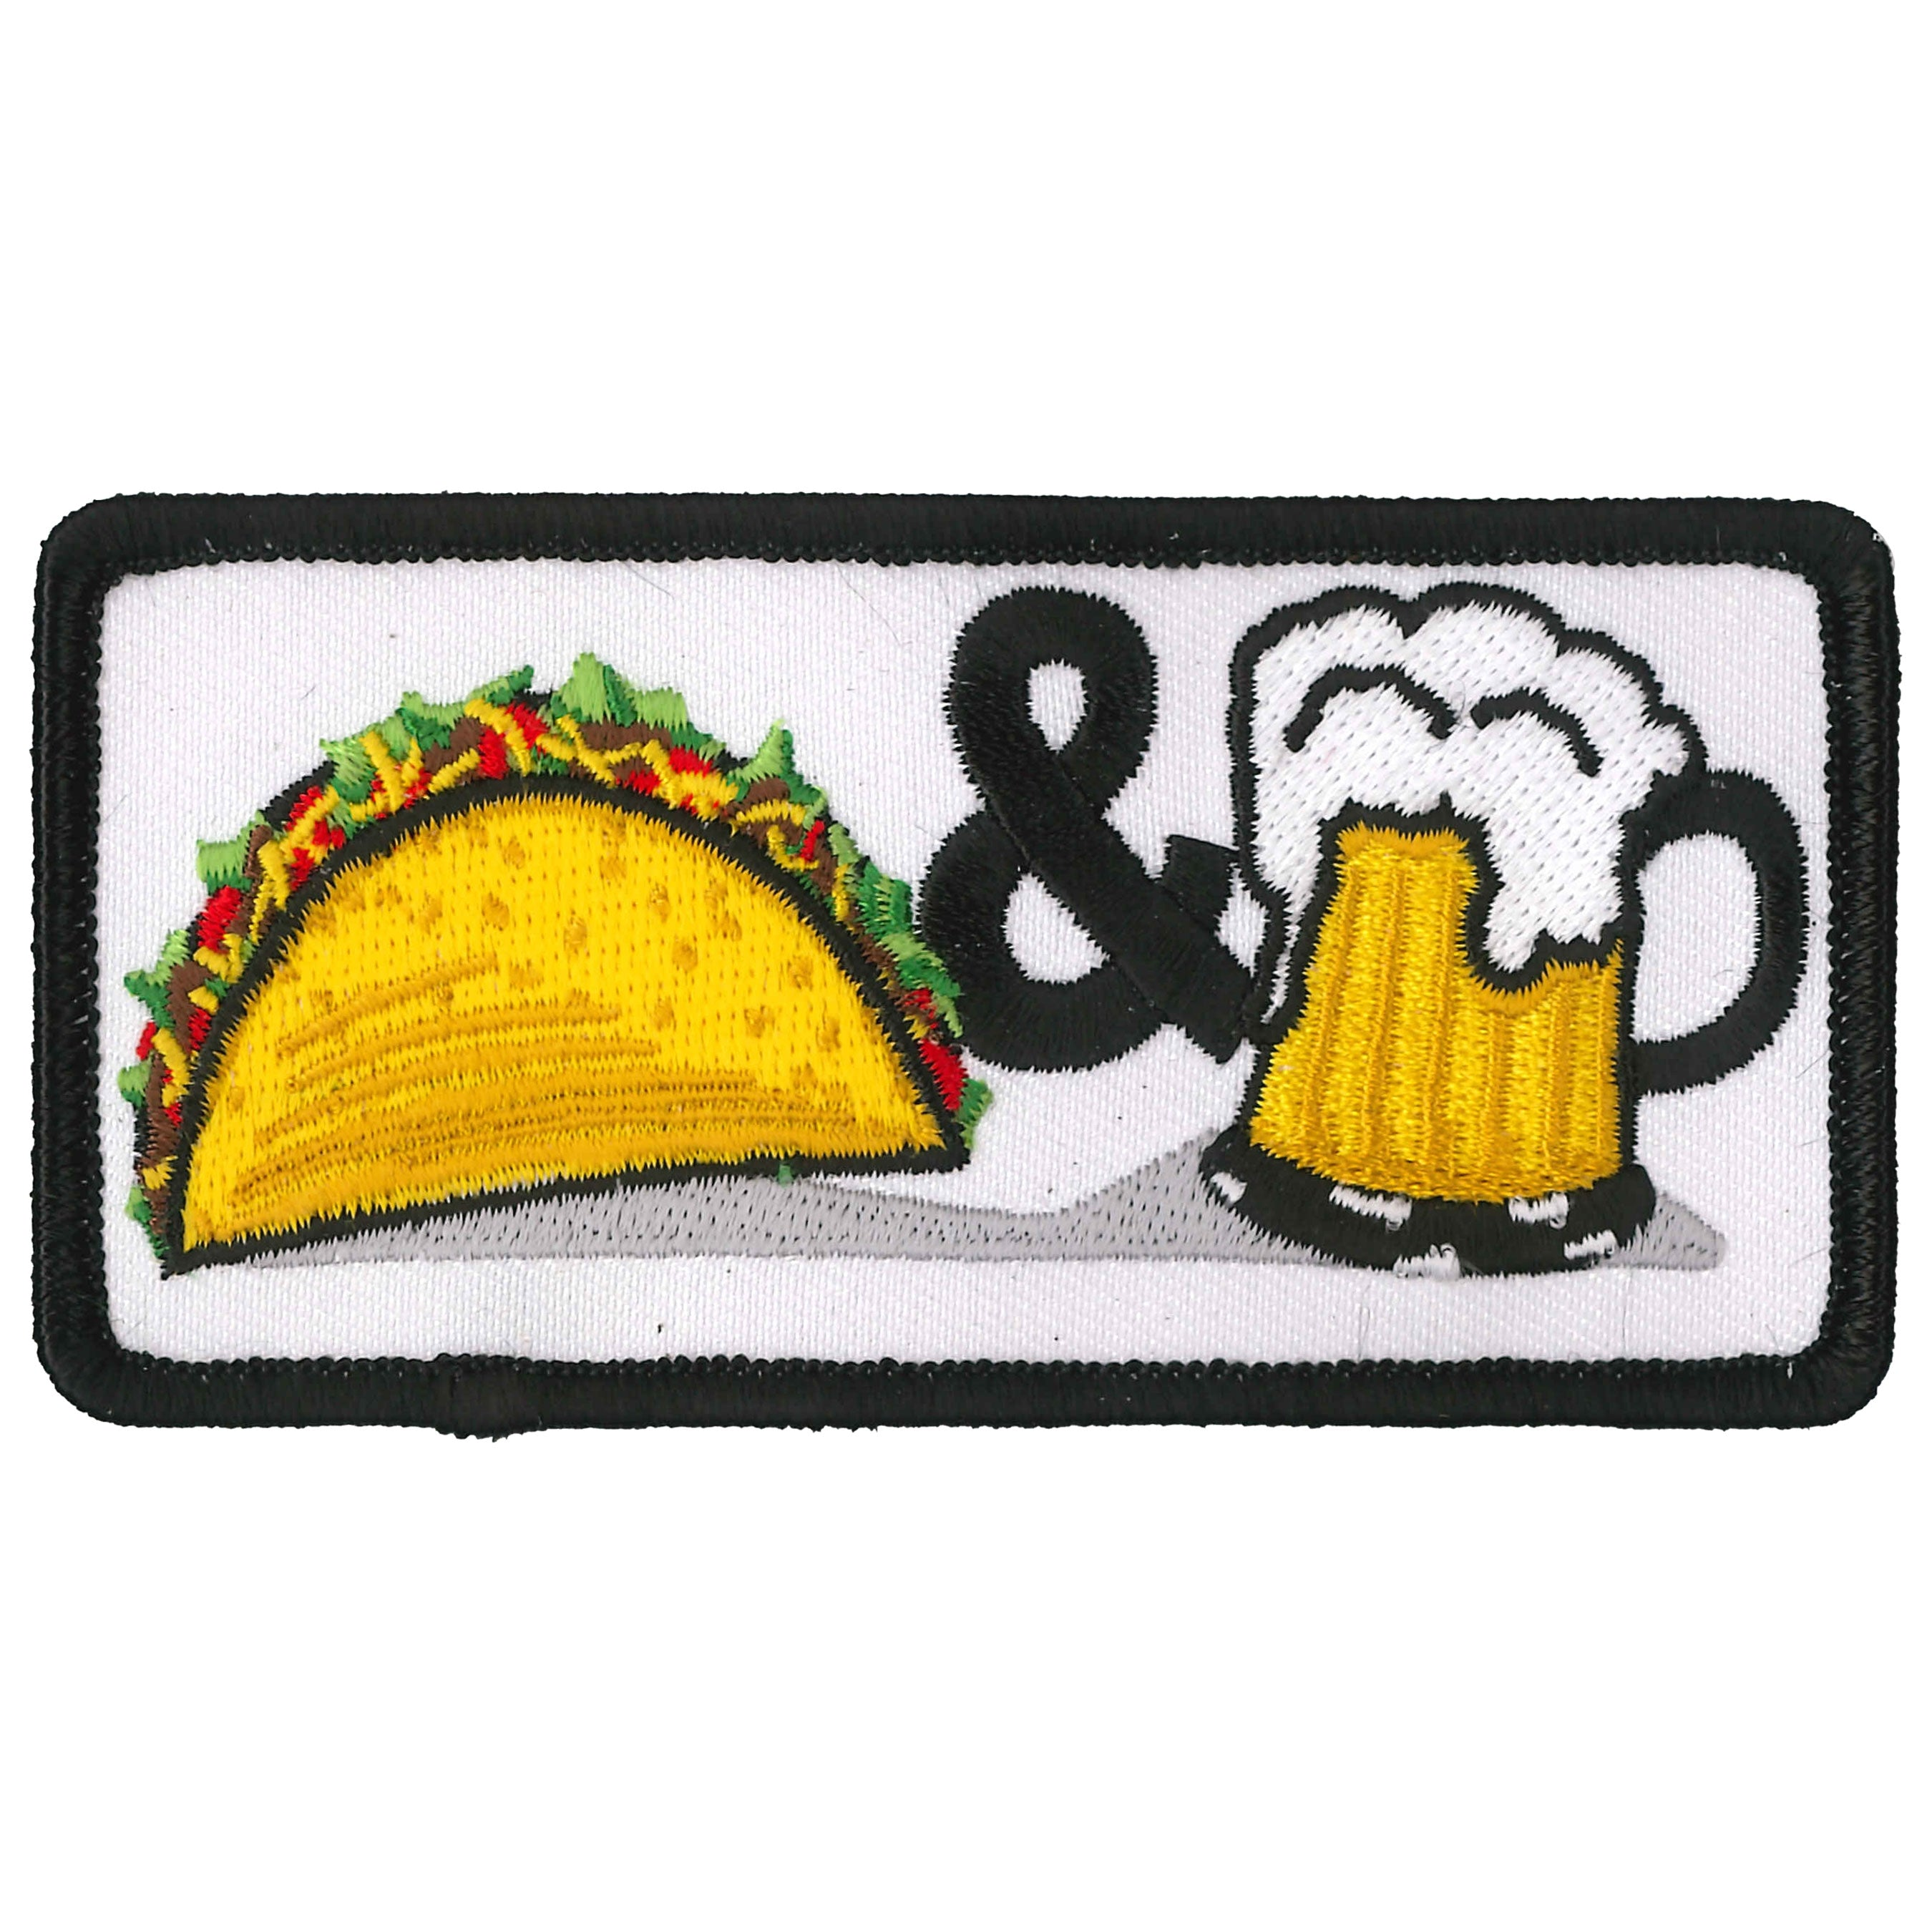 Hot Leathers Taco and Beer Patch